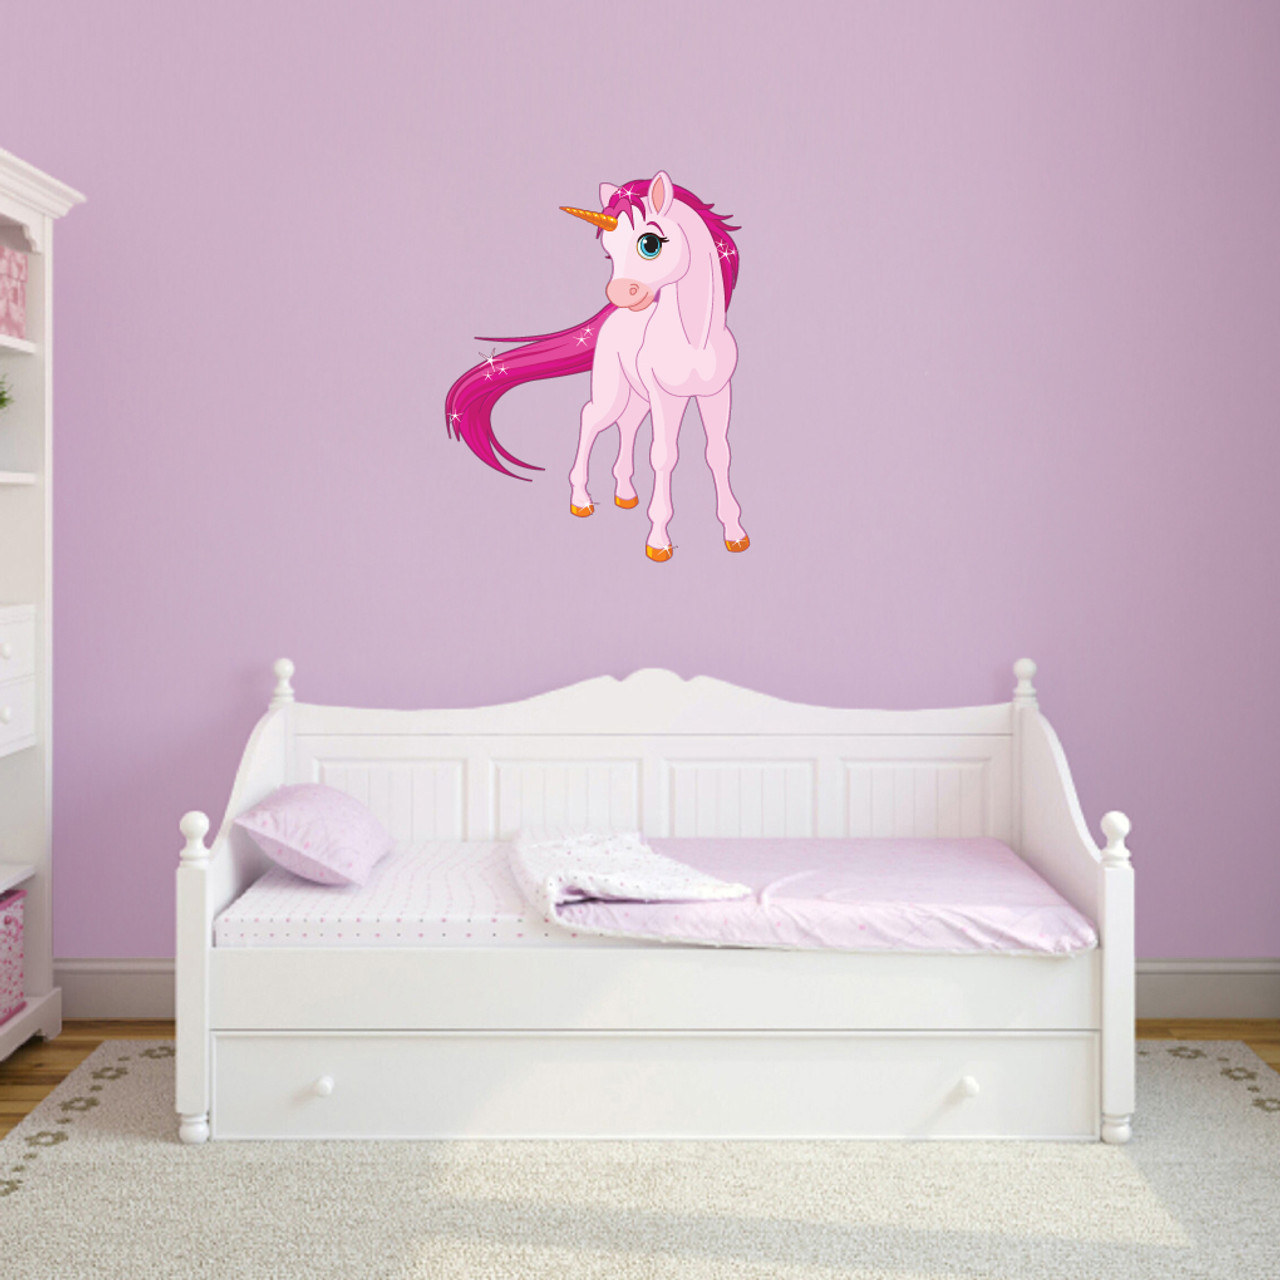 Pink Unicorn Printed Wall Decal